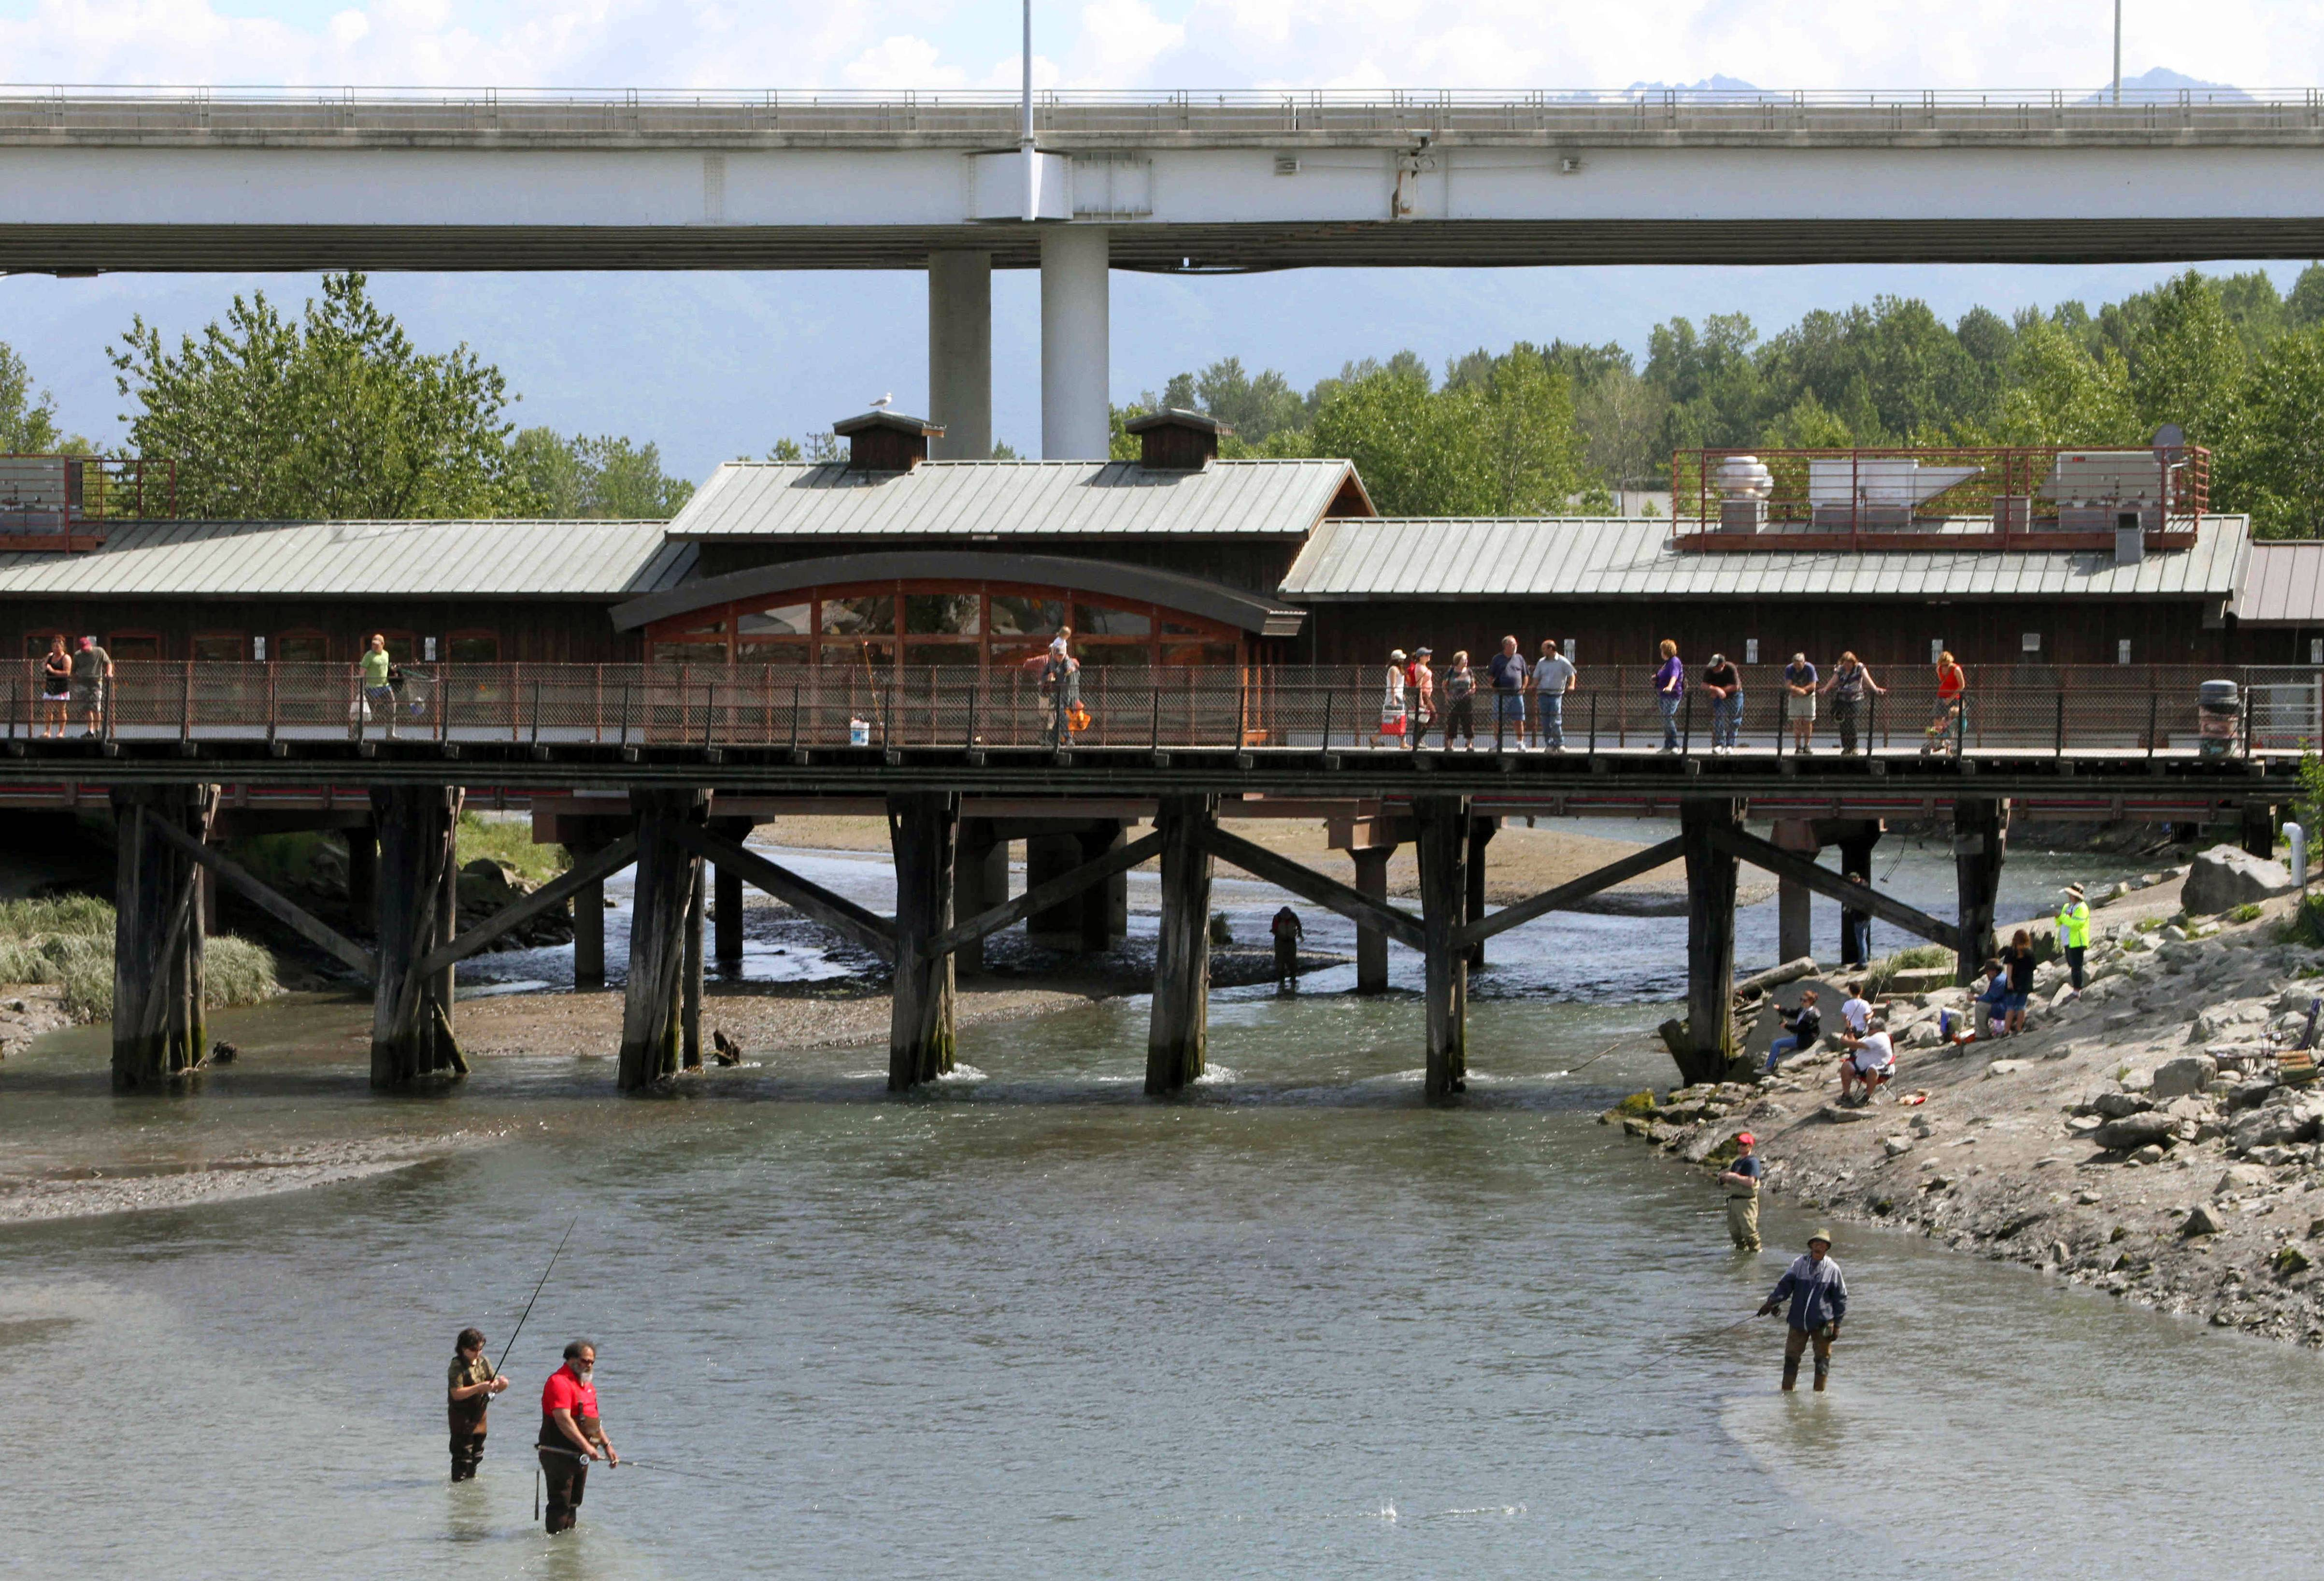 People watch fishermen angle for salmon on Ship Creek from pedestrian bridges in downtown Anchorage, Alaska.